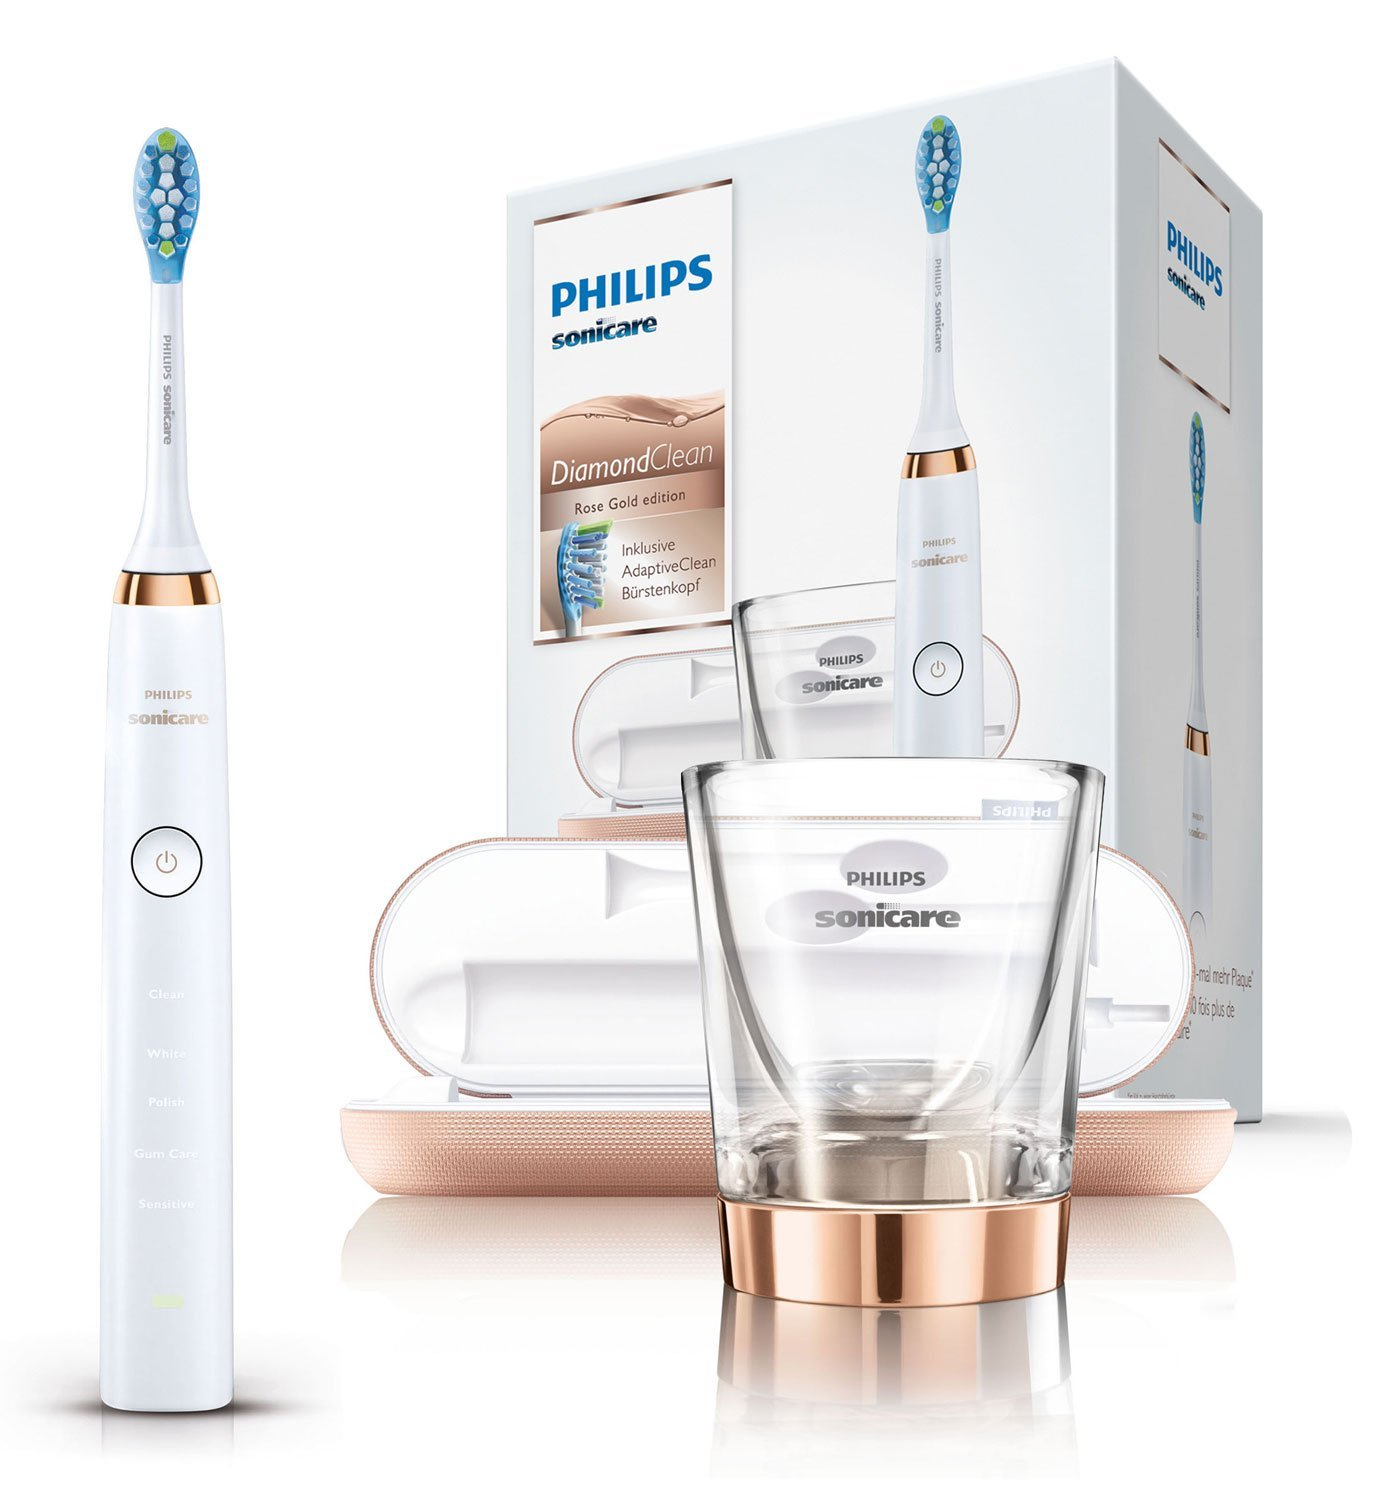 Philips SoniCare DiamondClean Schallzahnbürste amazon